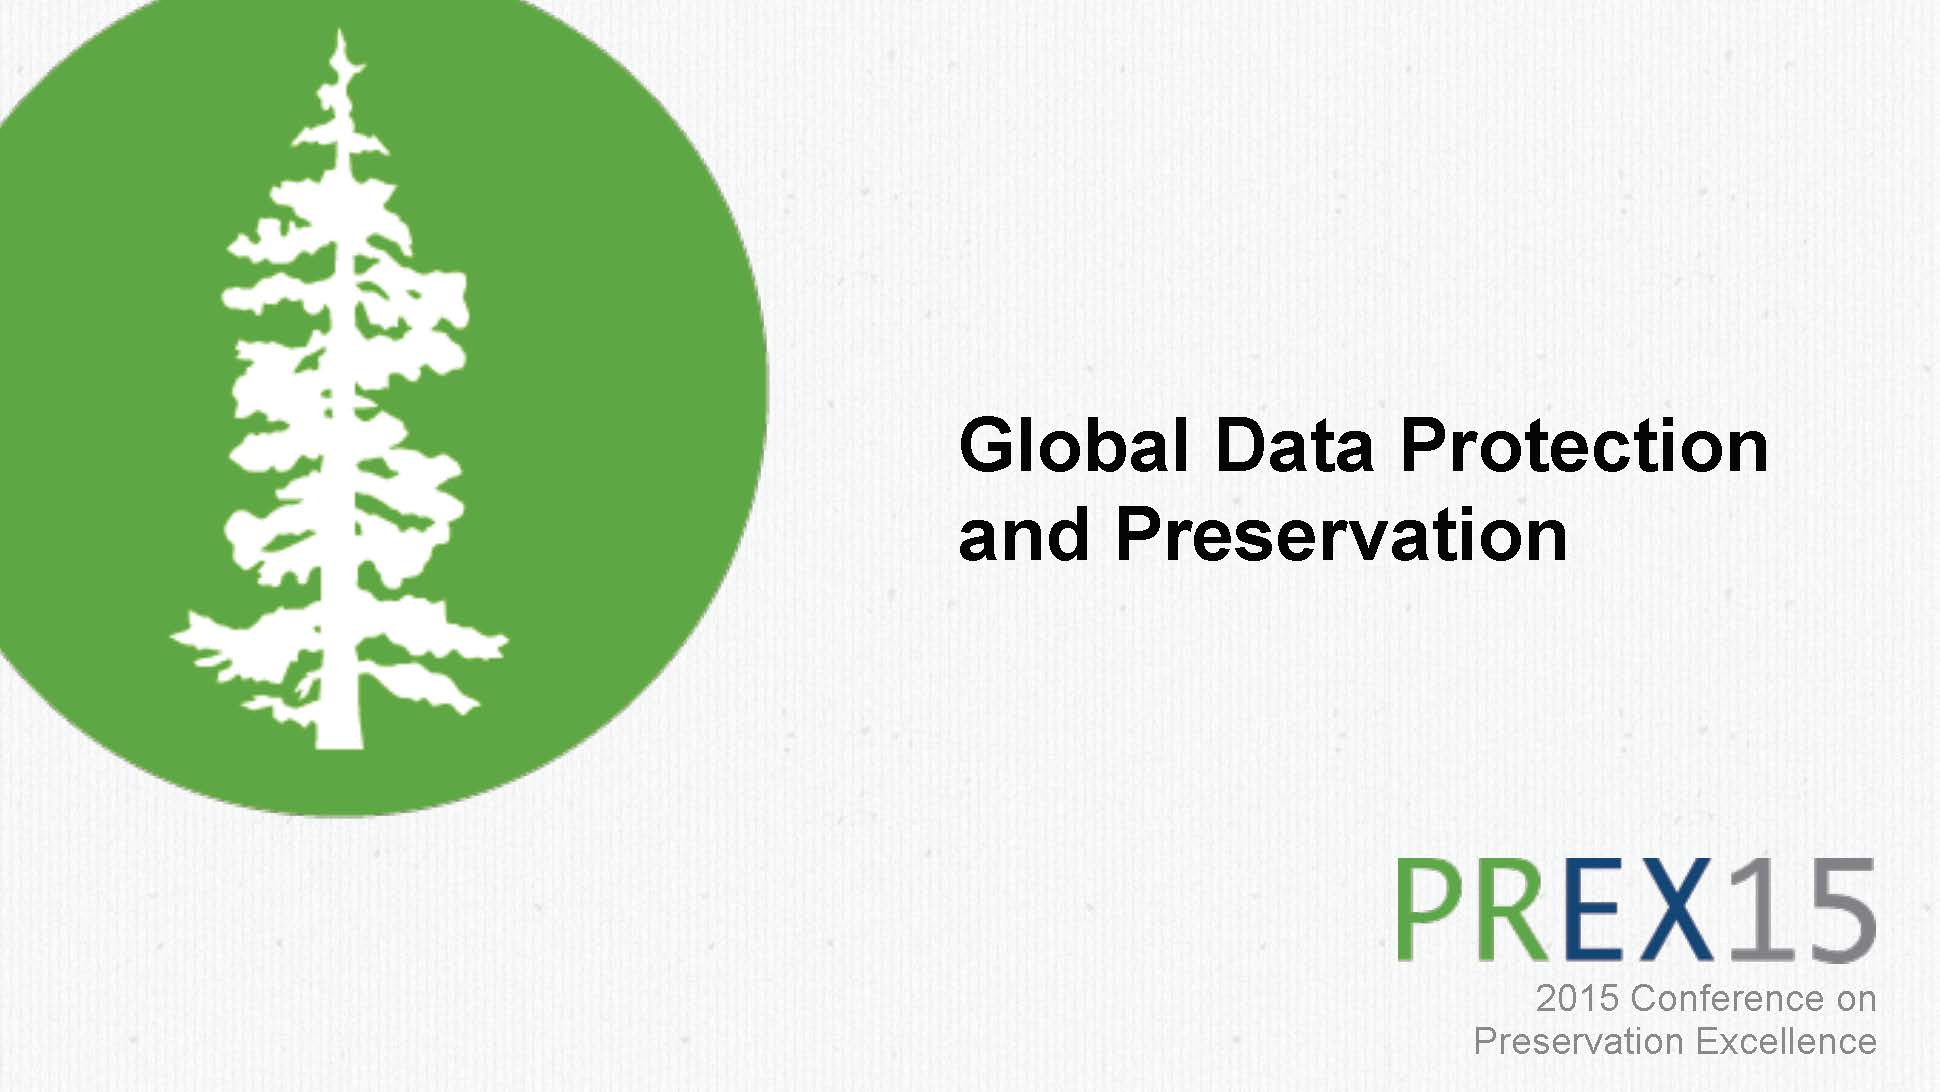 Session 5A: Global Data Protection and Preservation